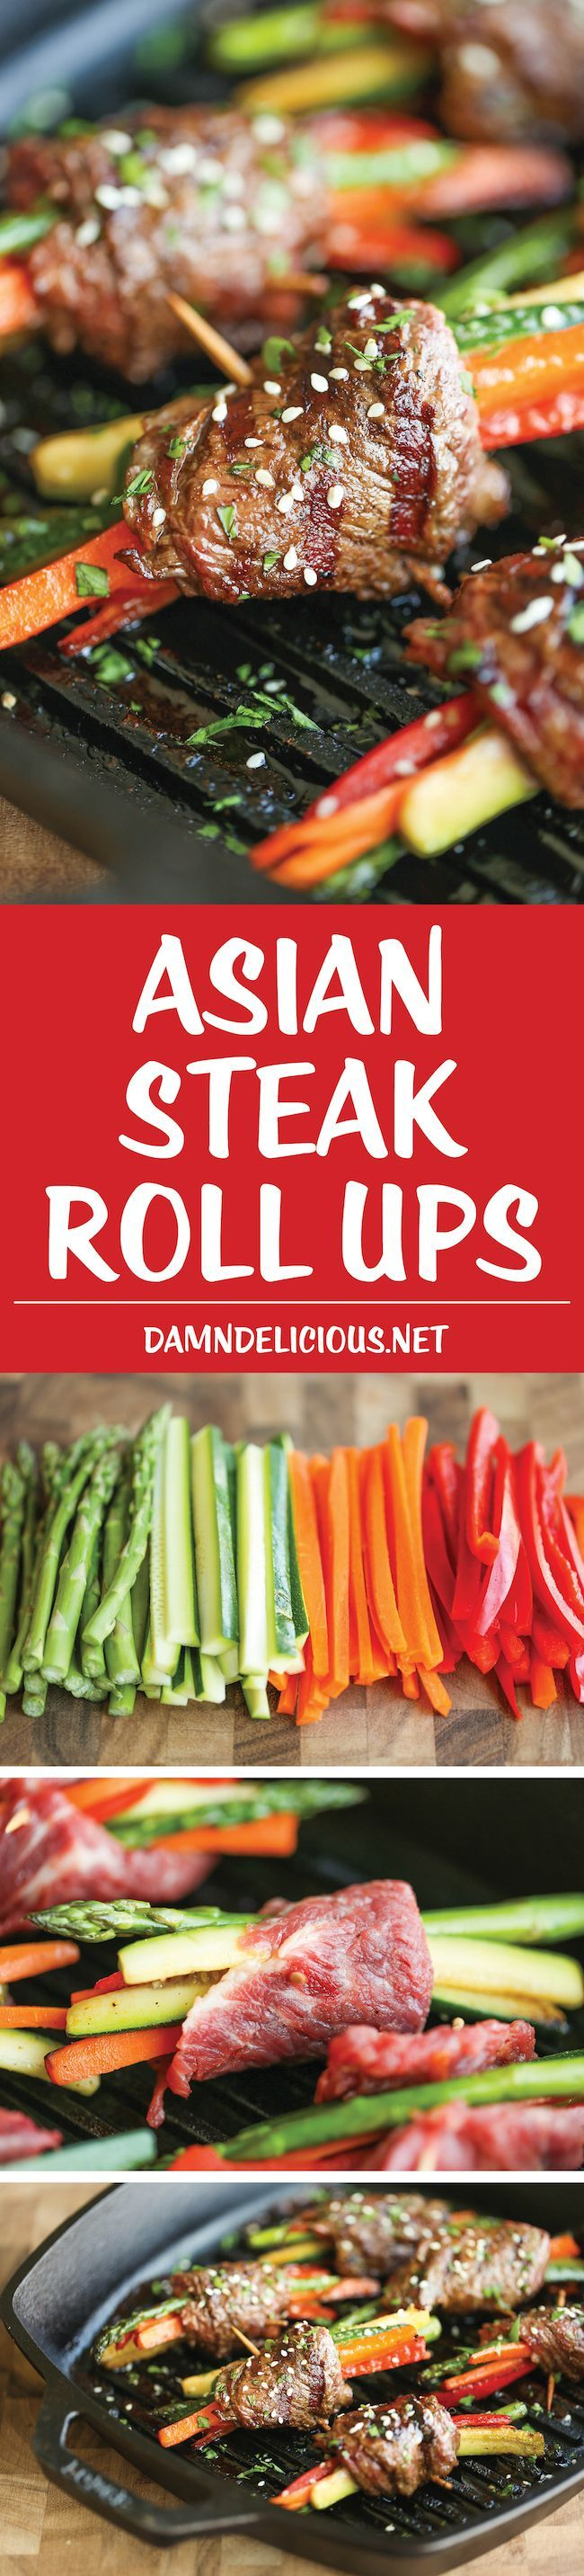 Asian Steak Roll Ups - Easy make-ahead roll ups with tons of veggies and the…